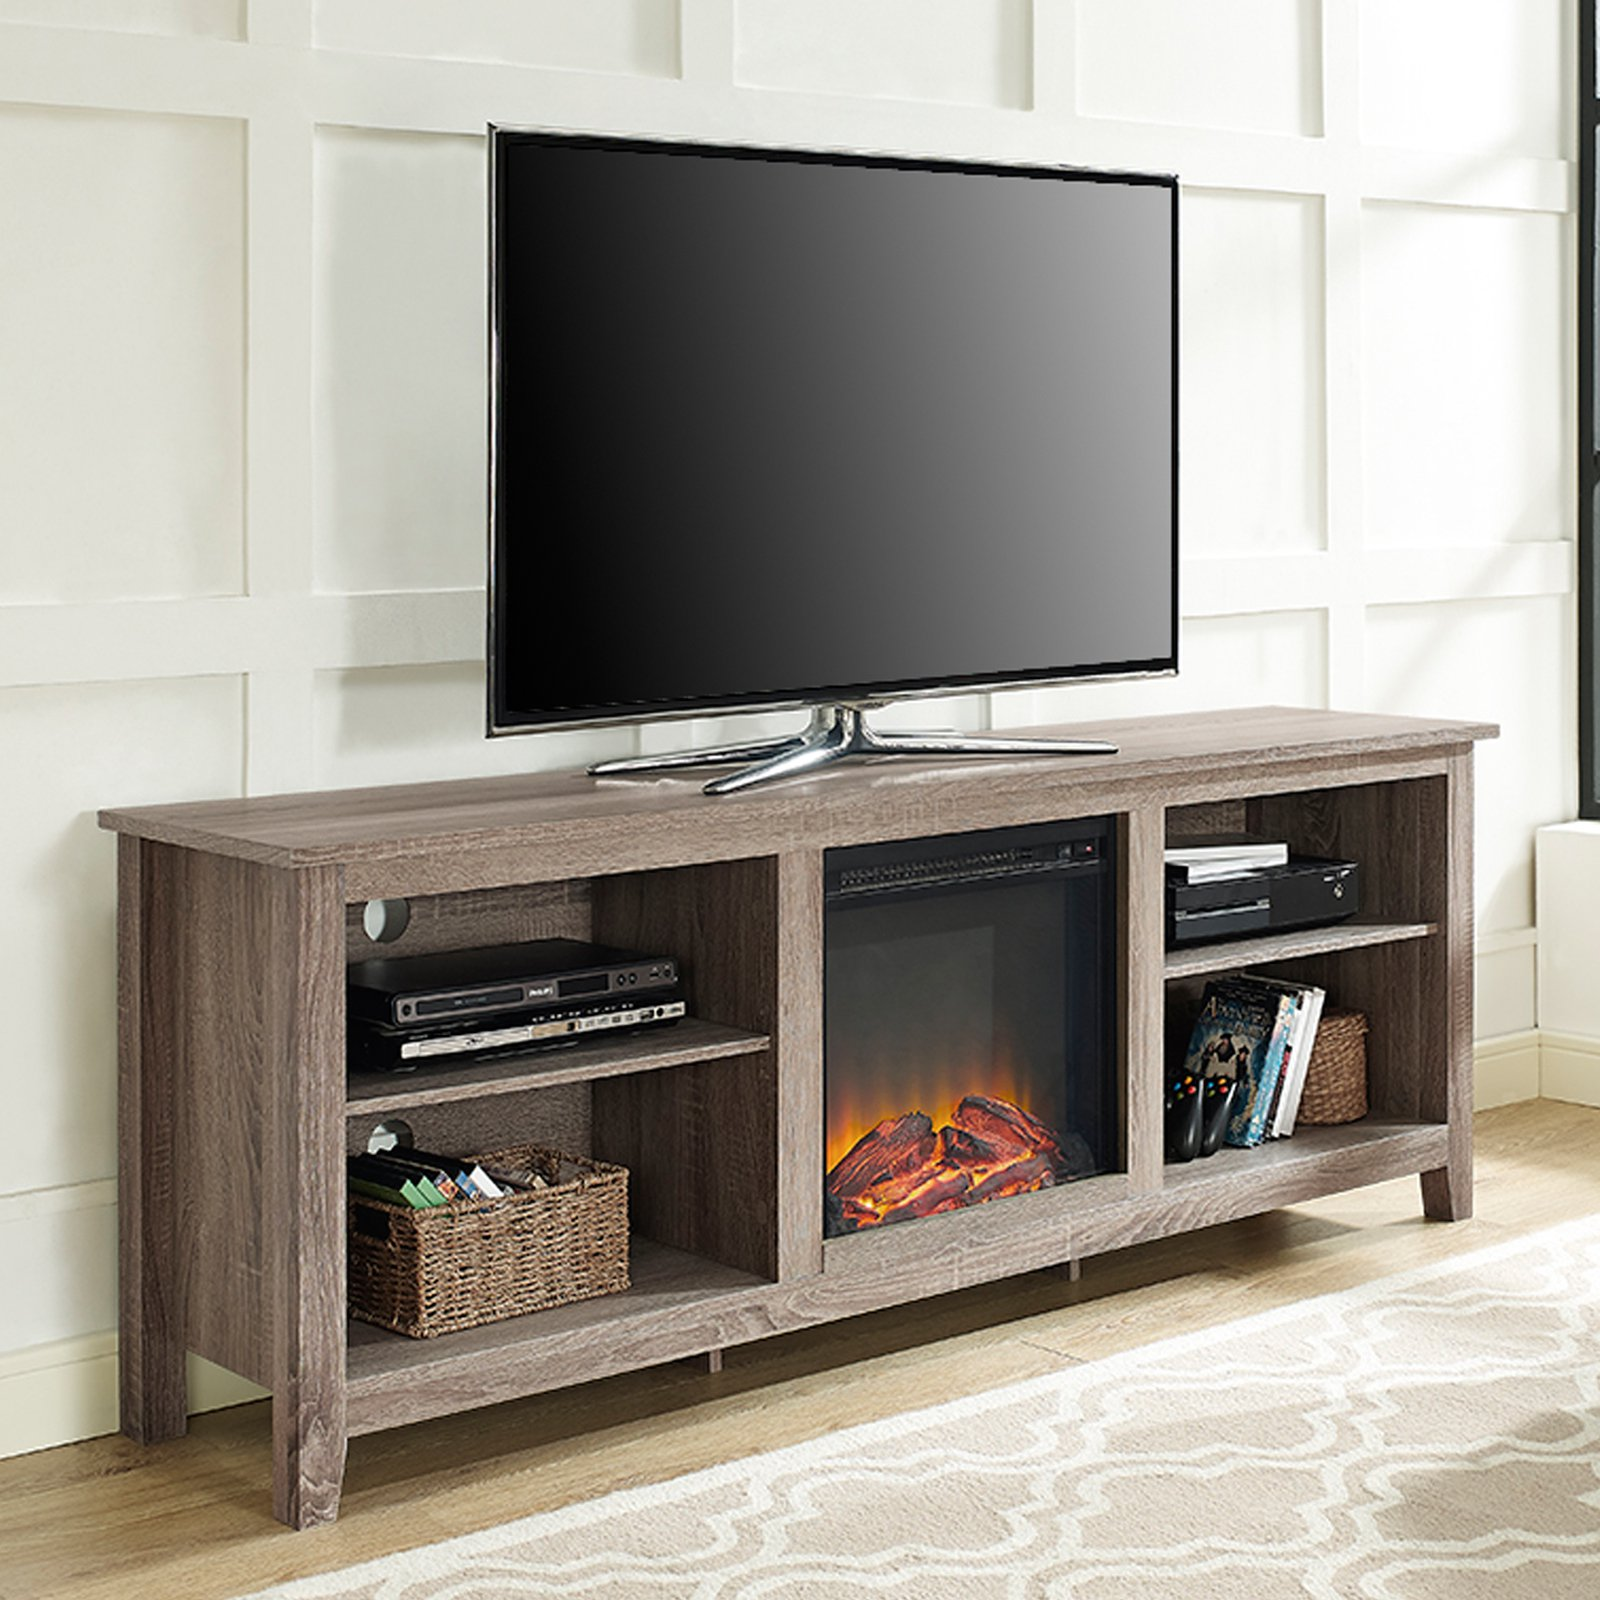 Belham Living Richardson 70 In Fireplace Tv Stand Walmart Com